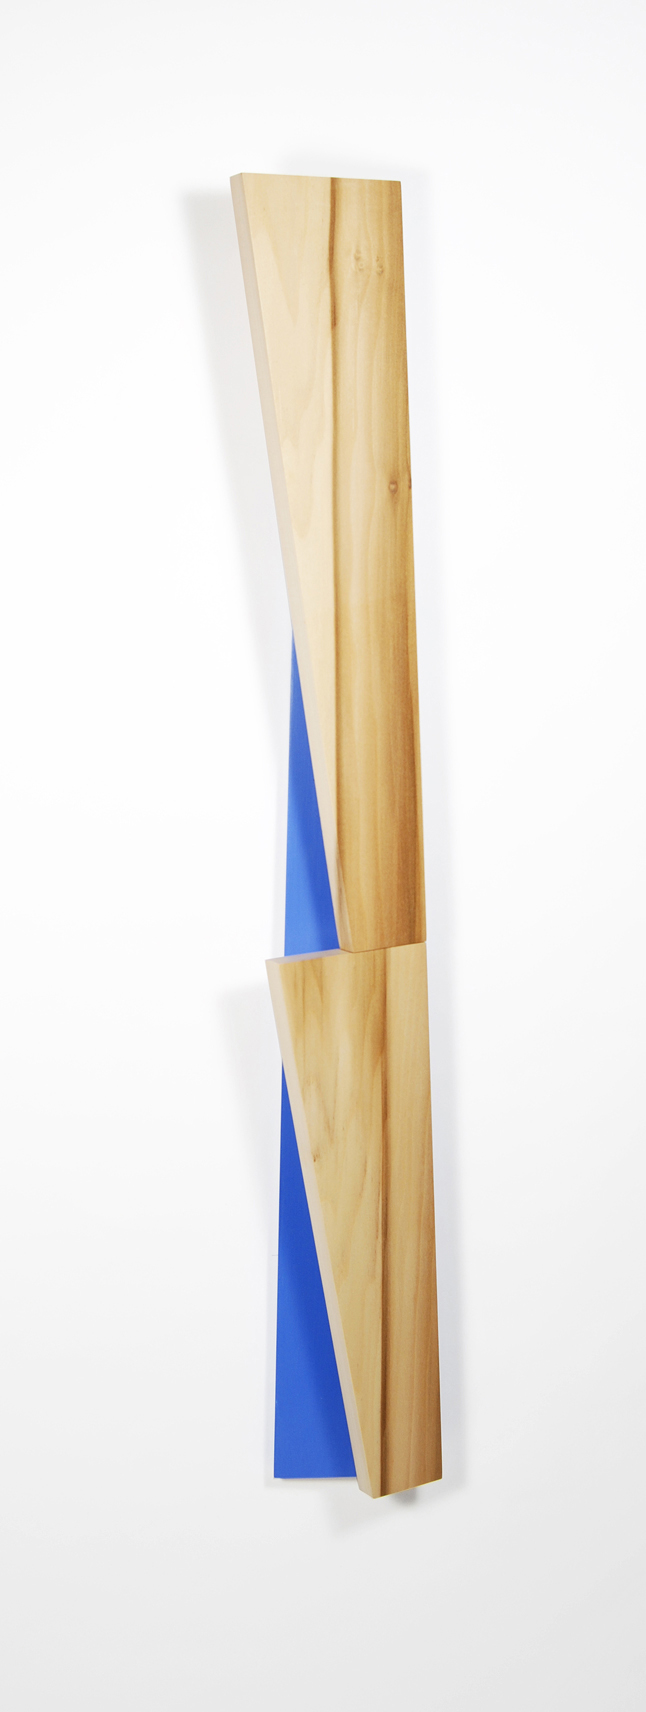 Richard Bottwin     Poplar Beam.2    2018  Poplar and acrylic paint on birch plywood  Signed by the artist,  verso   35 x 4.5 x 3.5 inches